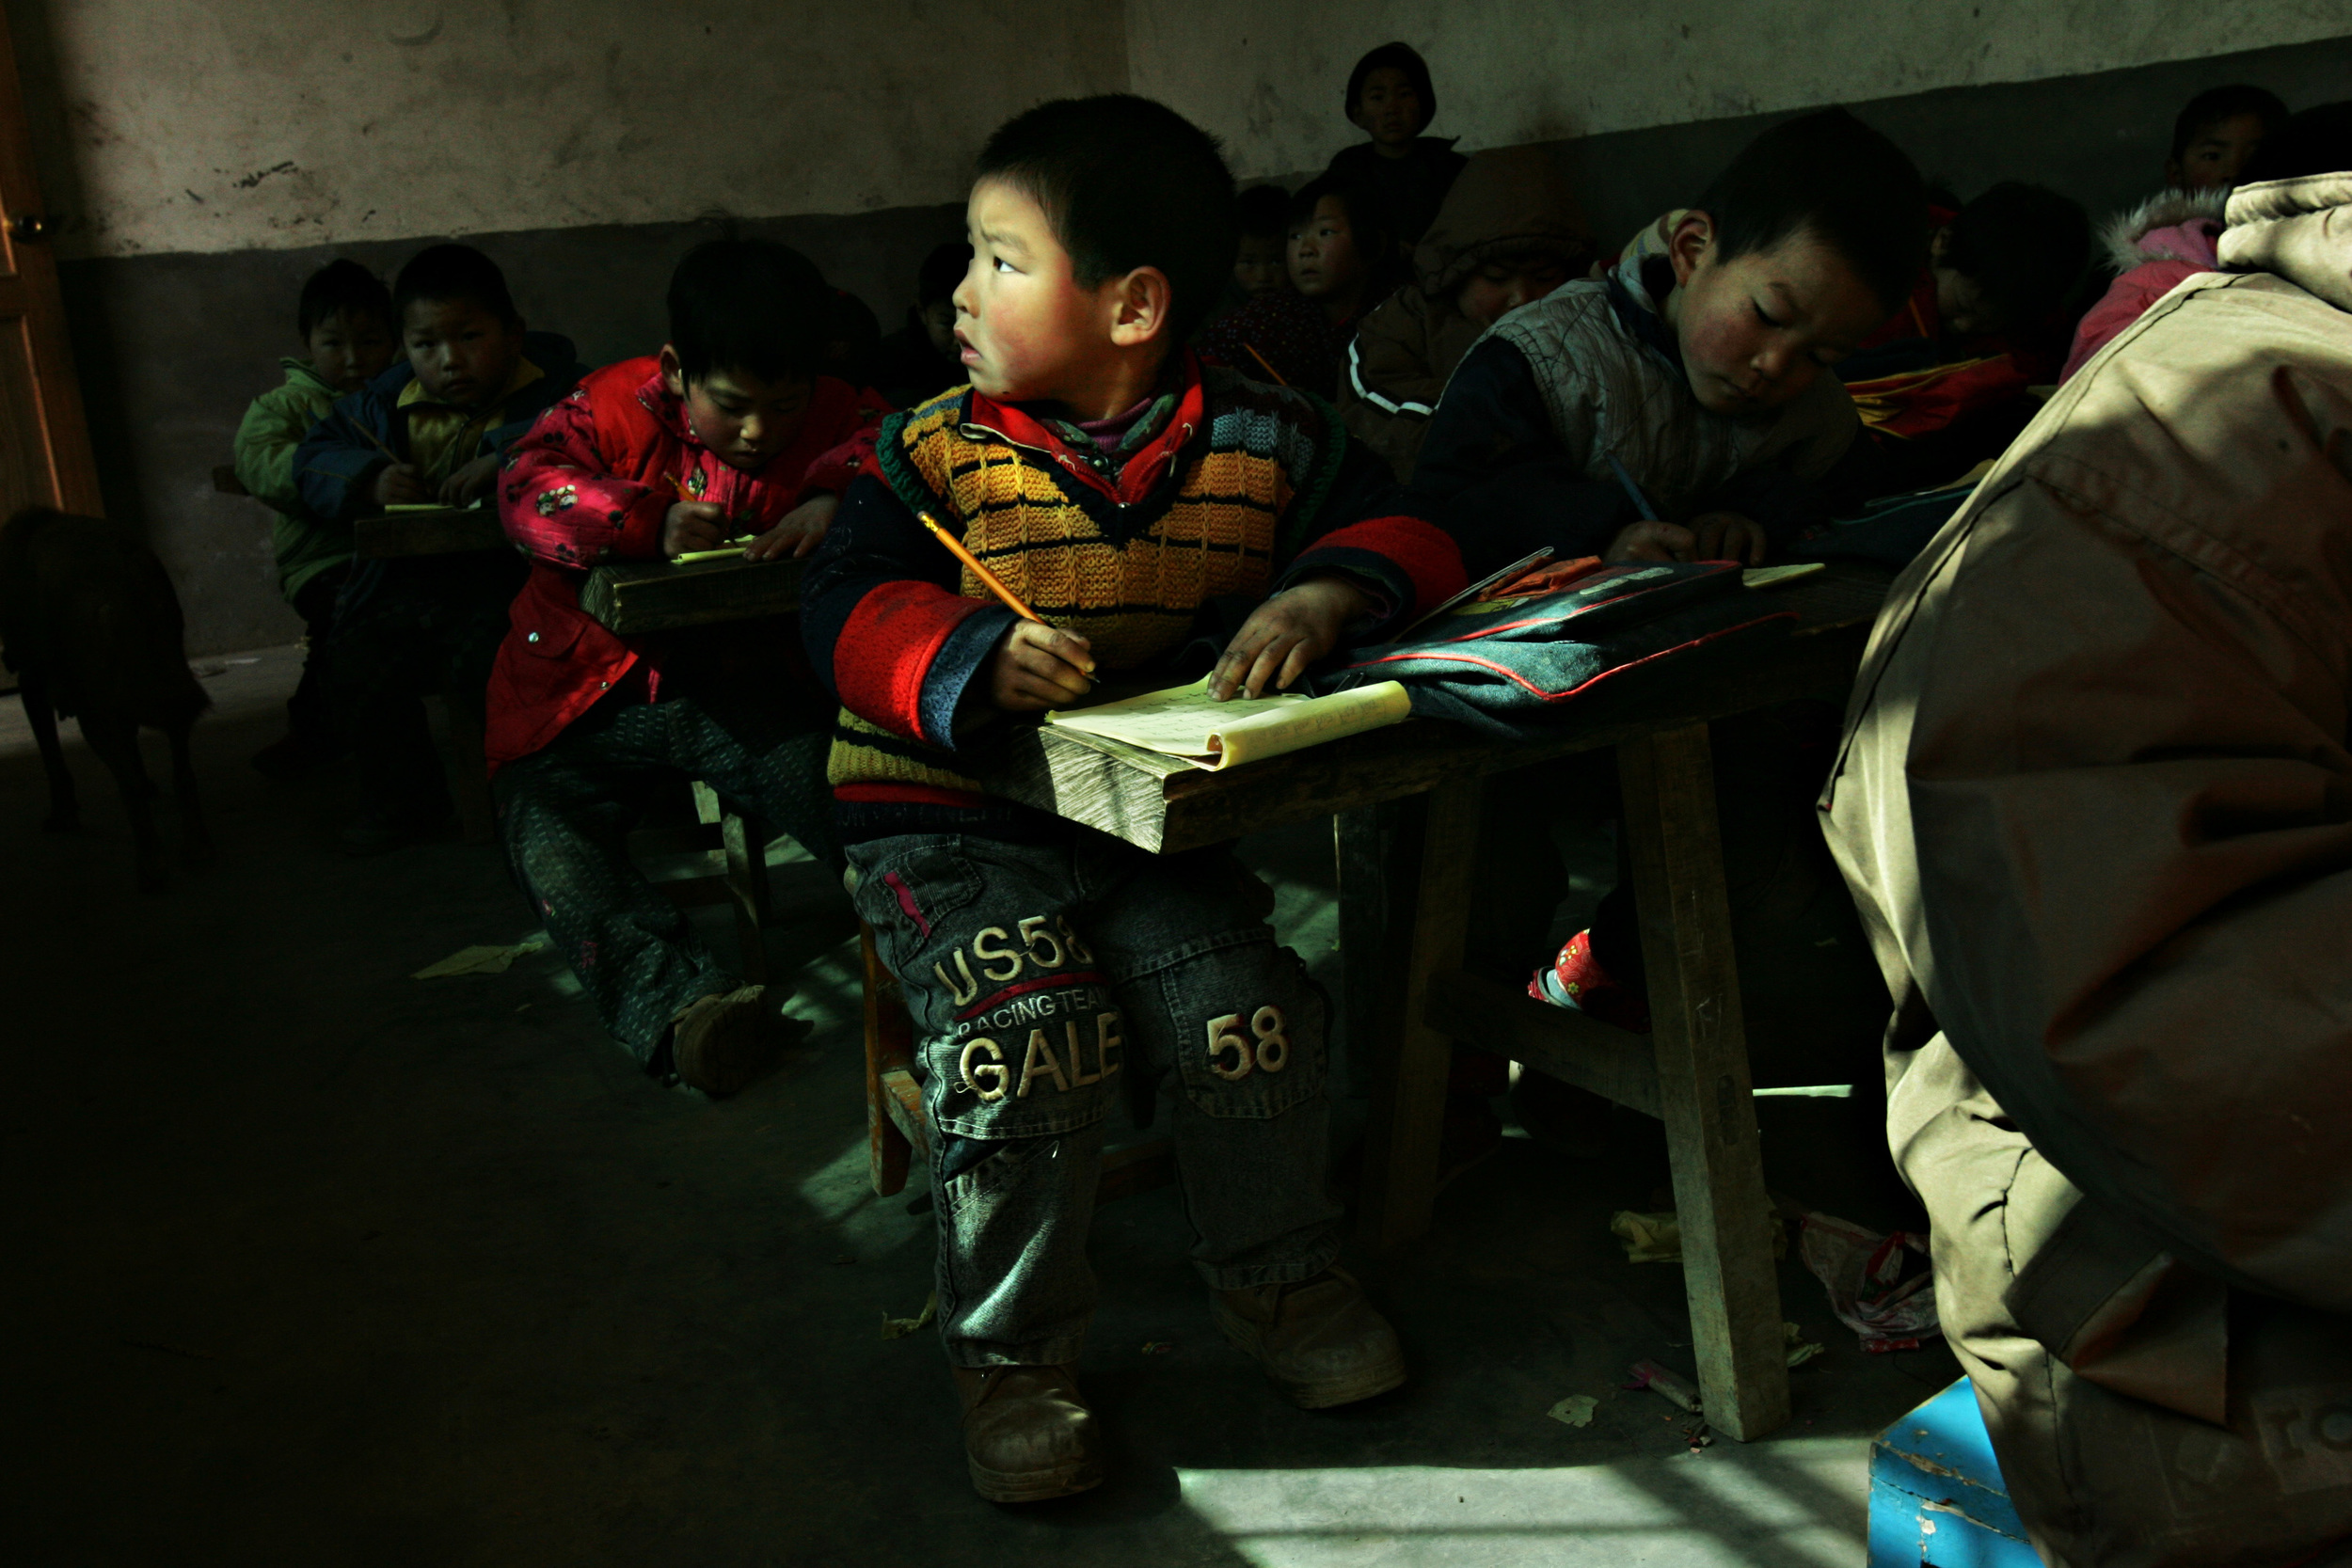 Children practice writing English at a school in Sunying where more than eighty people have died of cancer since 1990. Children are especially vulnerable to adverse health affects from drinking the polluted water because of their immature physiological development.